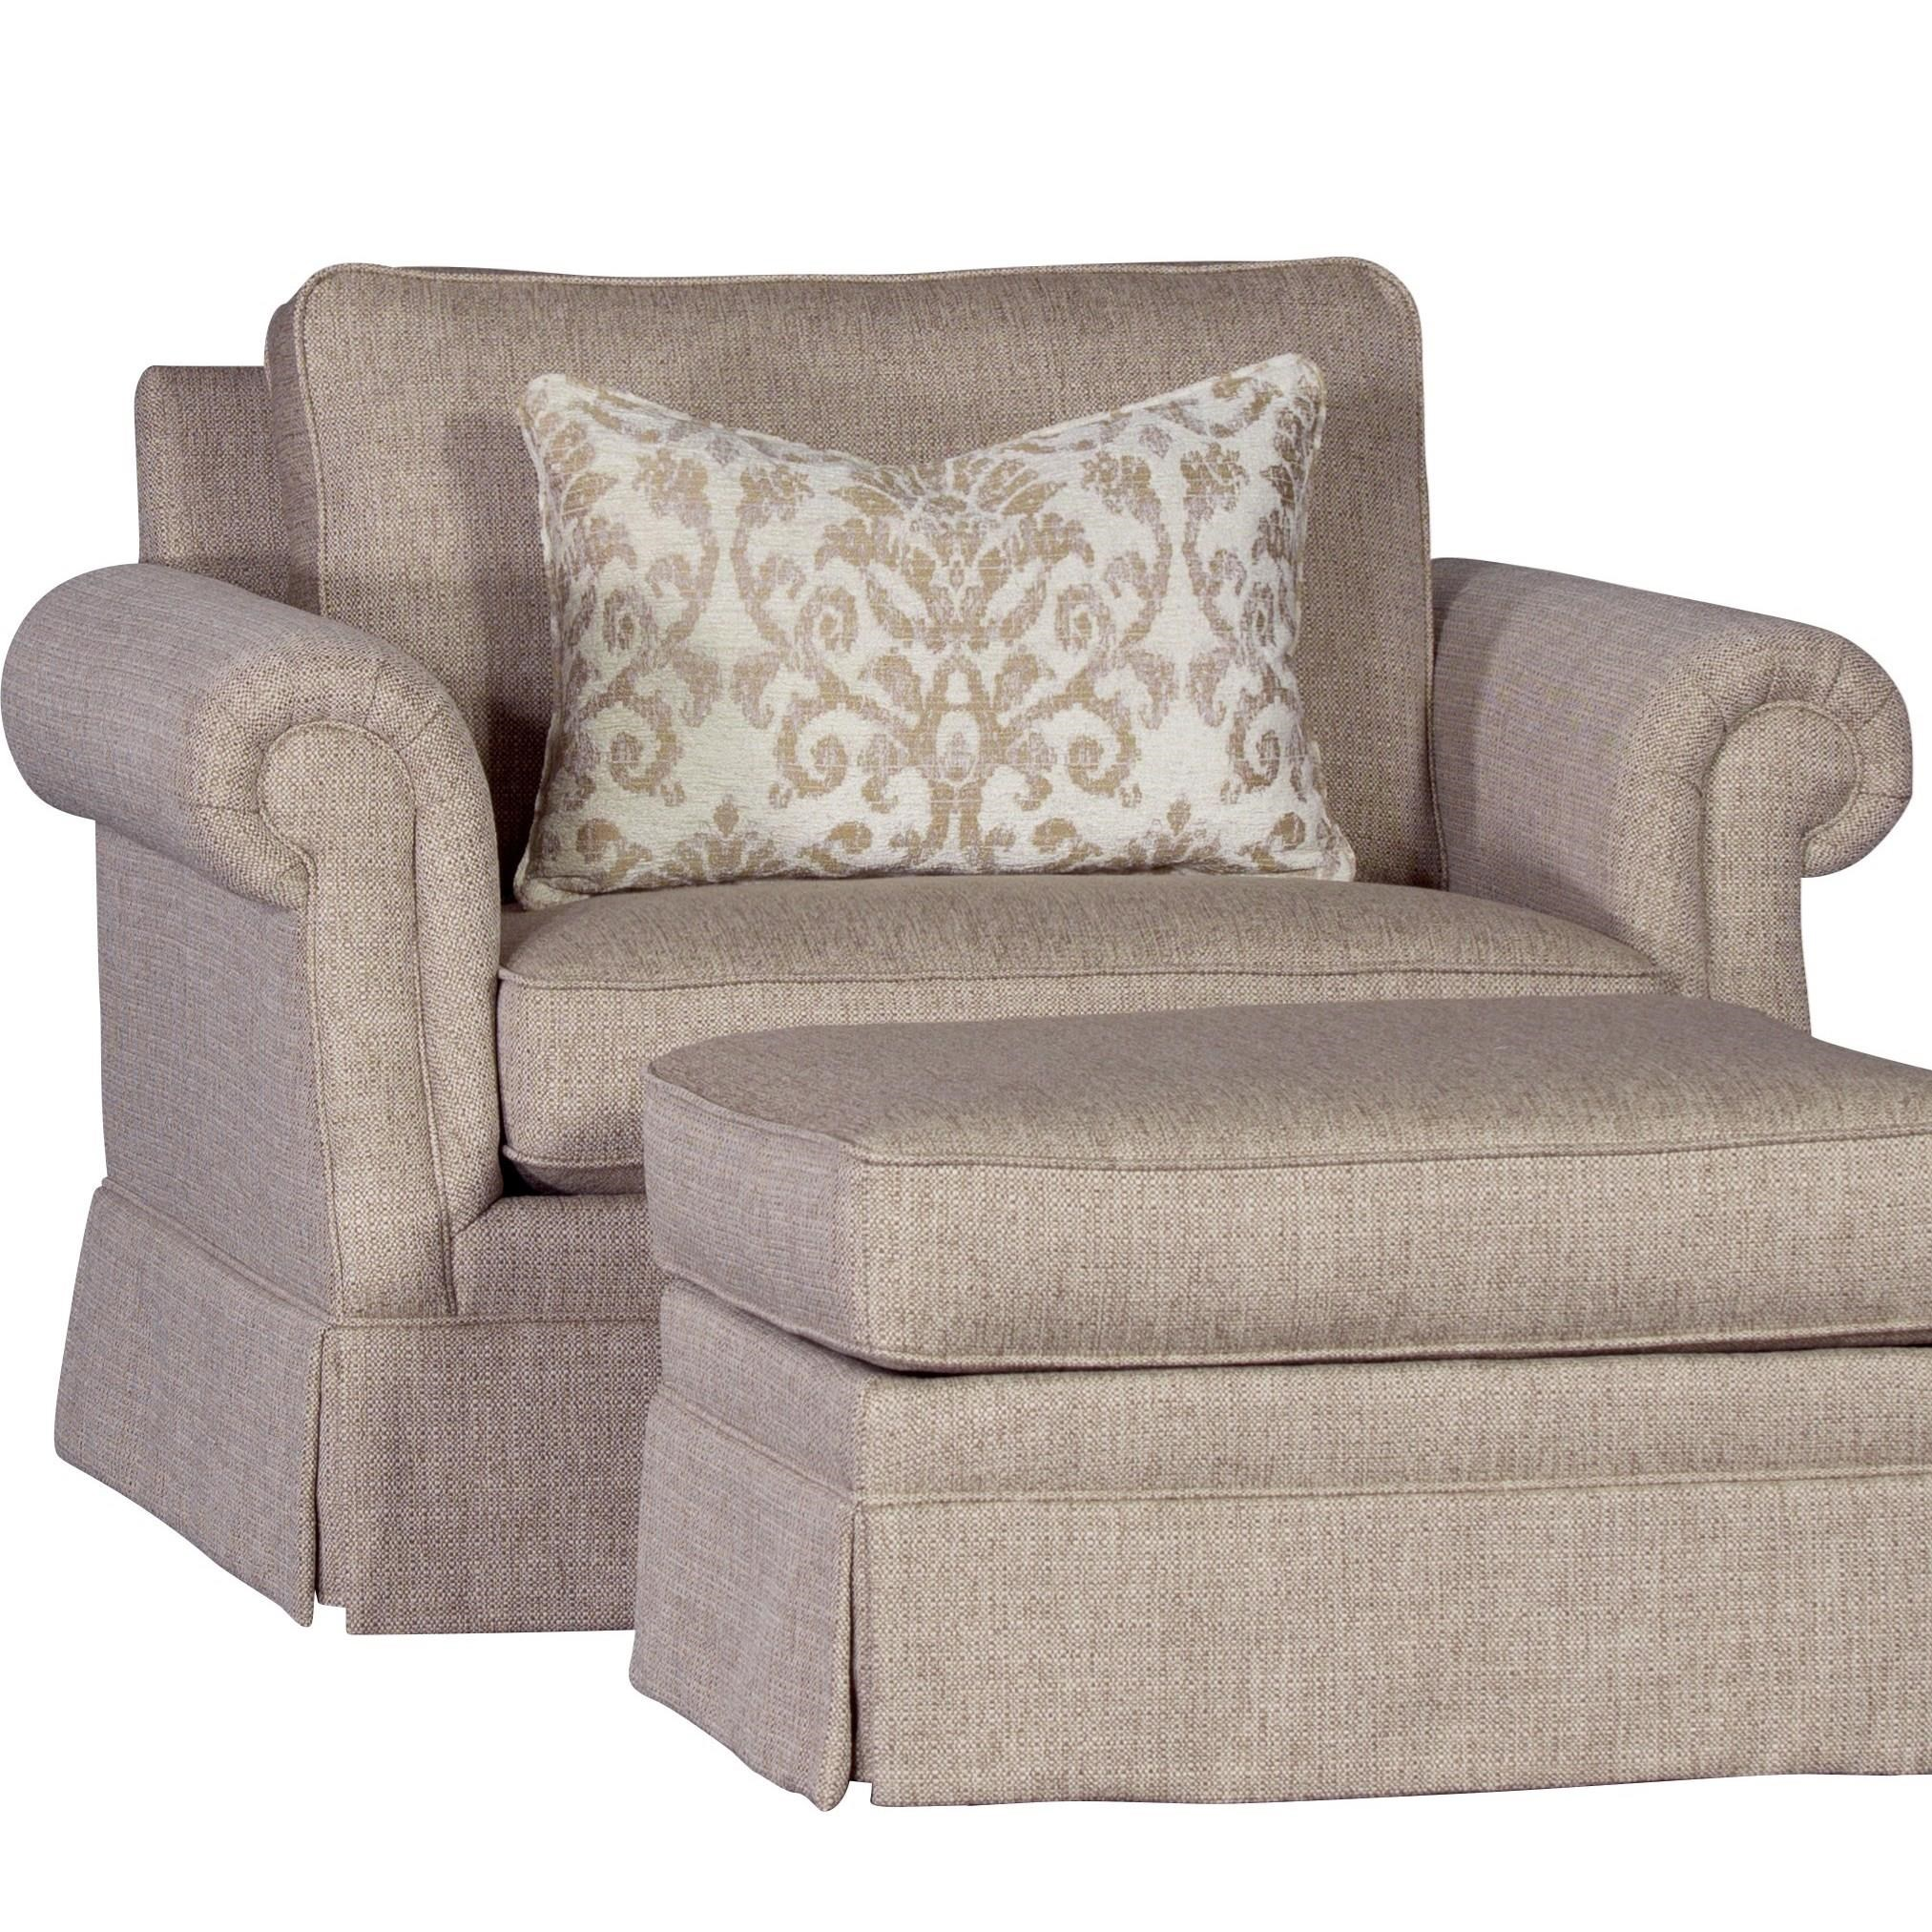 2600 Chair by Mayo at Wilson's Furniture